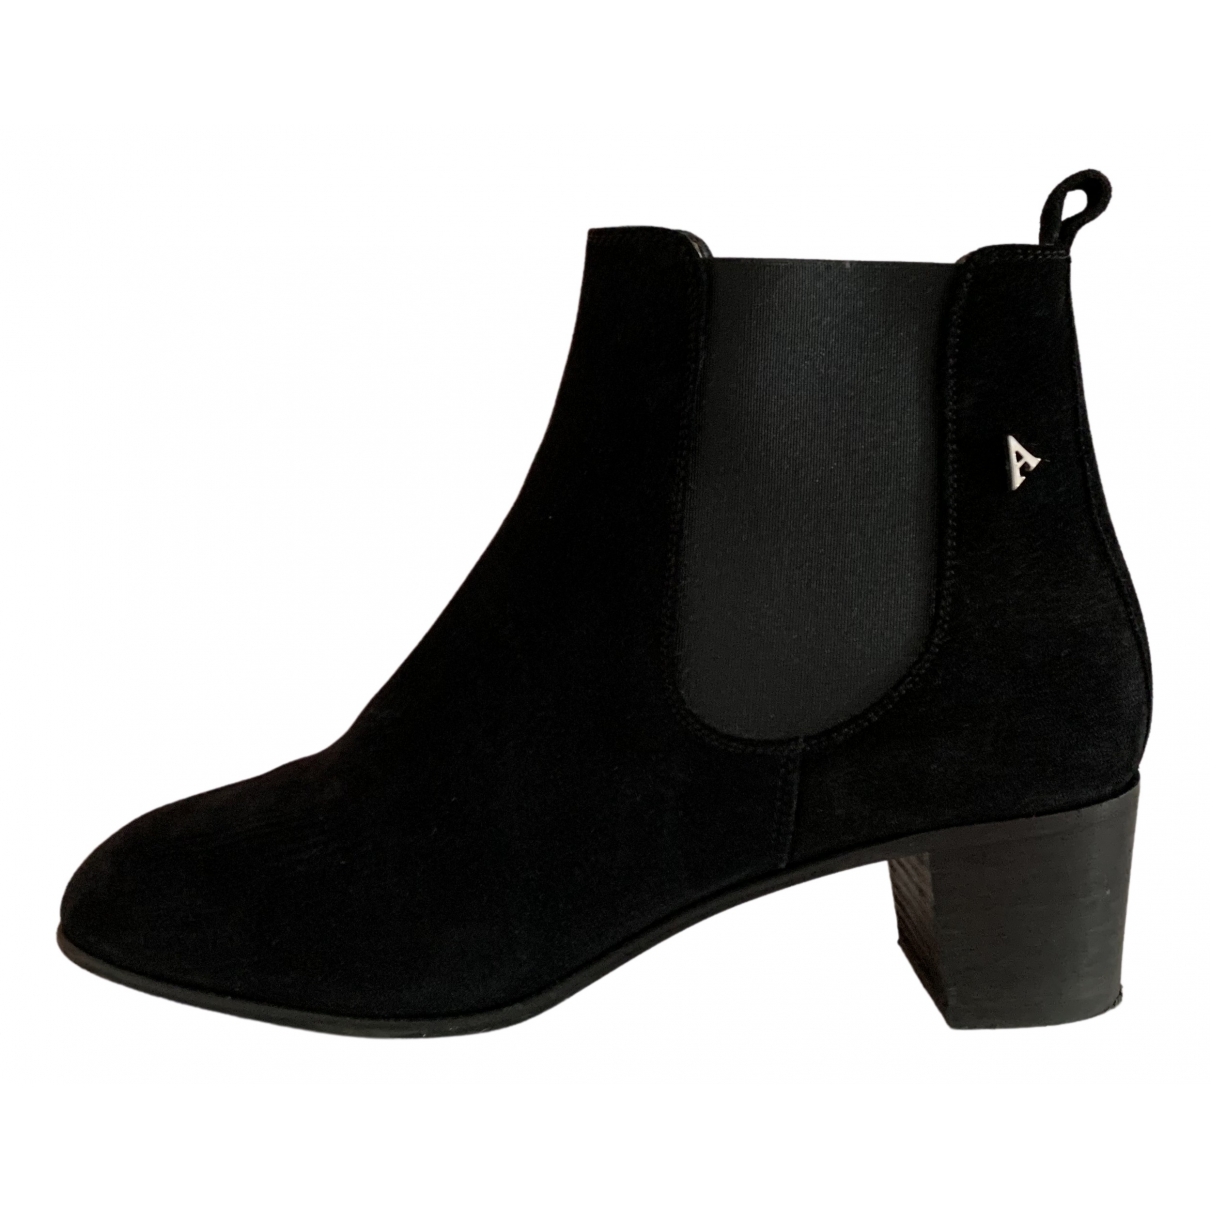 Acne Studios N Black Suede Ankle boots for Women 38 EU